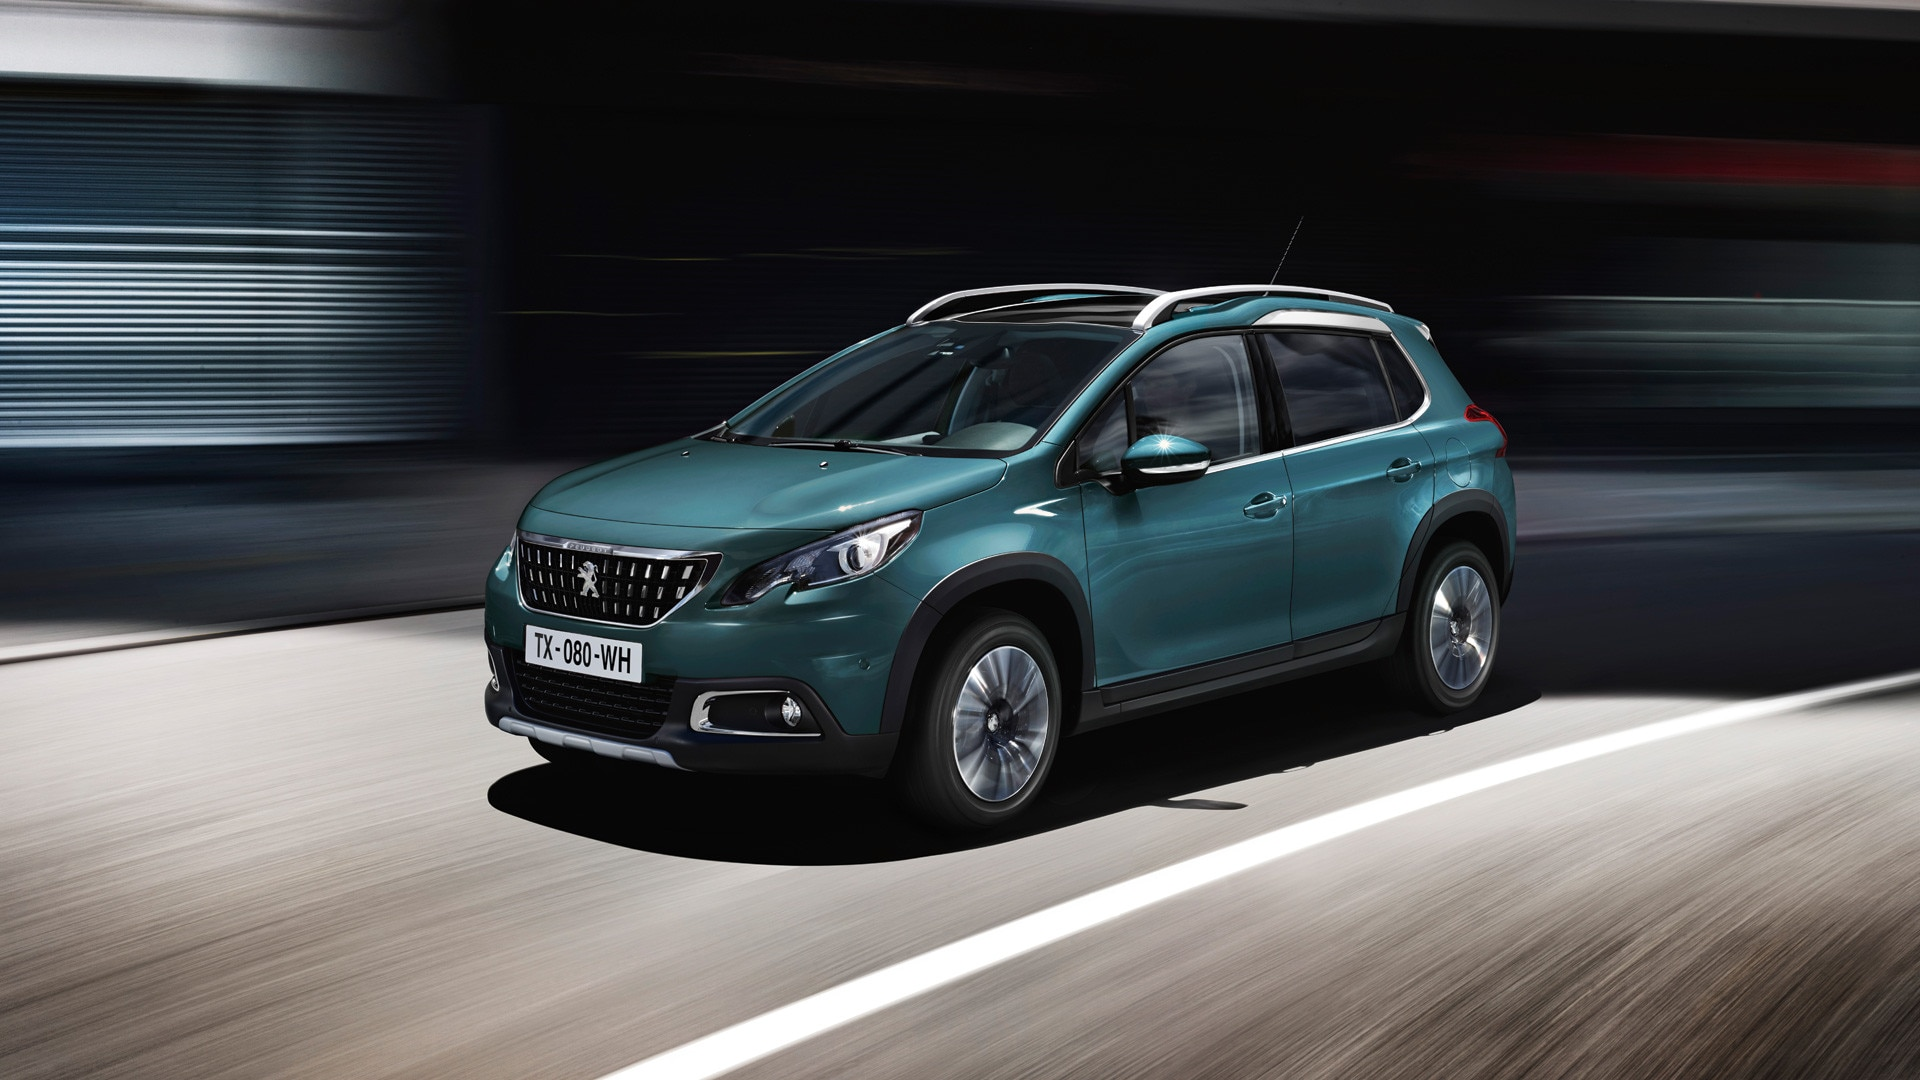 peugeot 2008 showroom suv test drive today. Black Bedroom Furniture Sets. Home Design Ideas